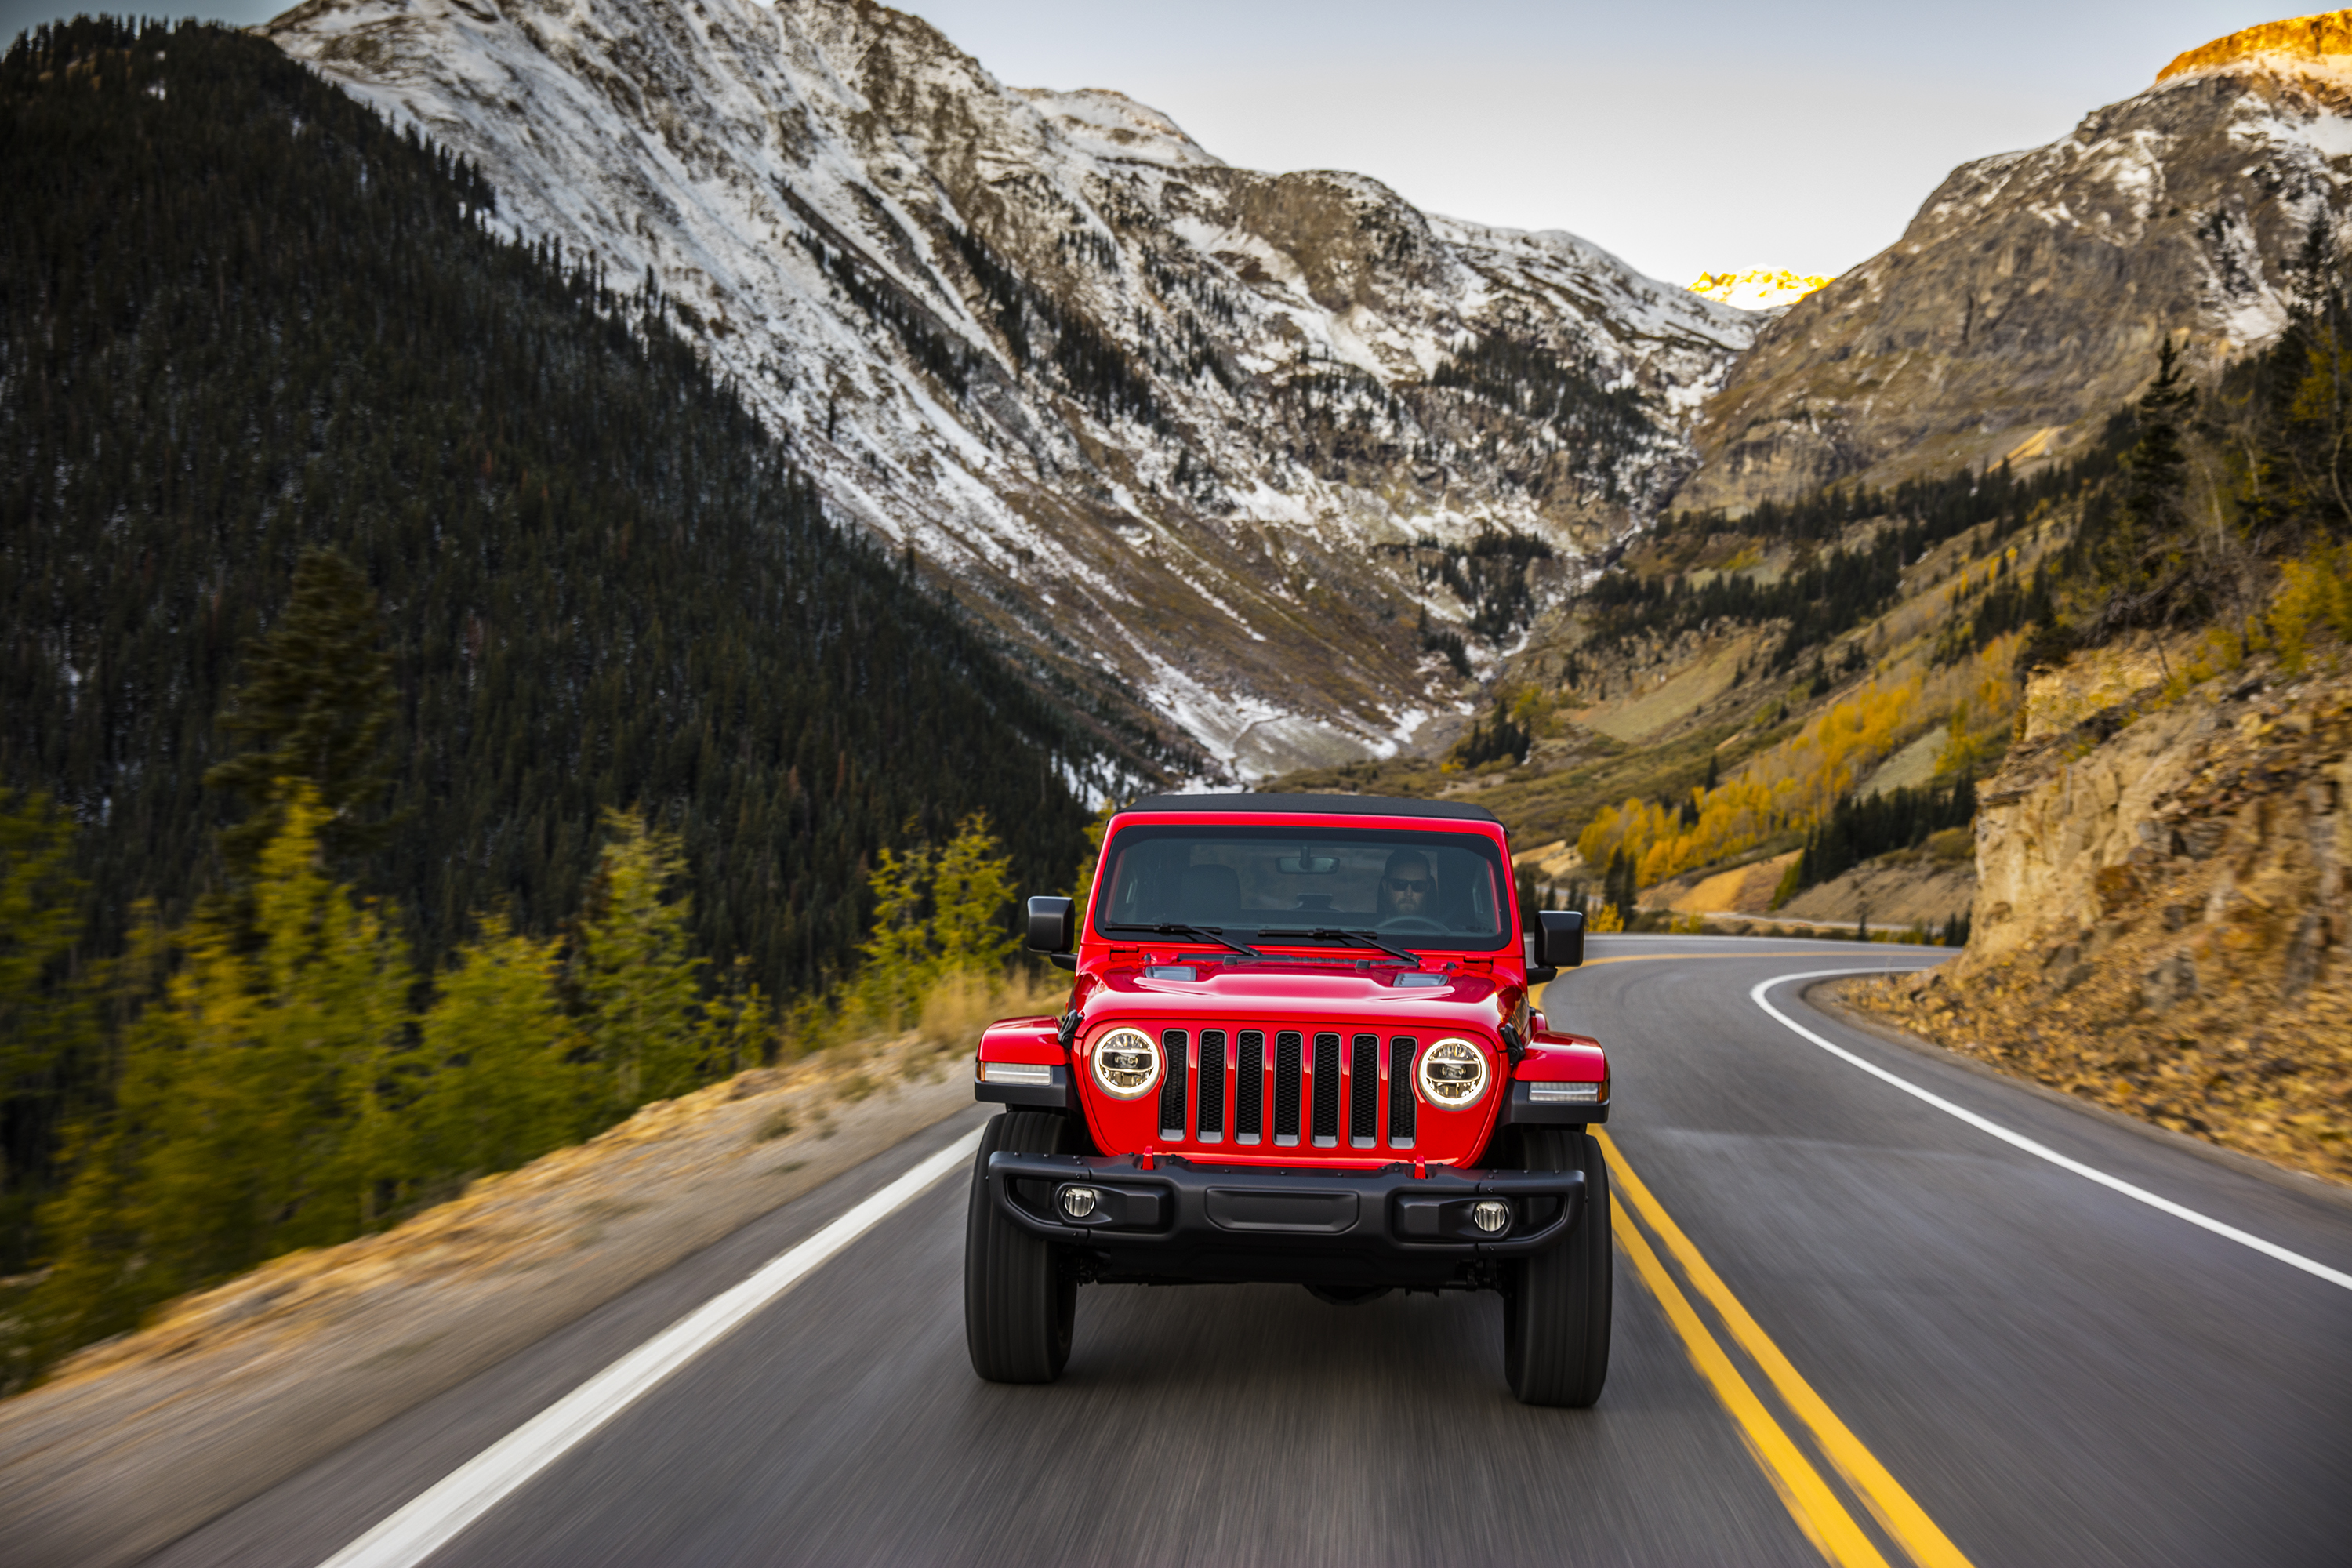 2018 Jeep Wrangler Rubicon front driving